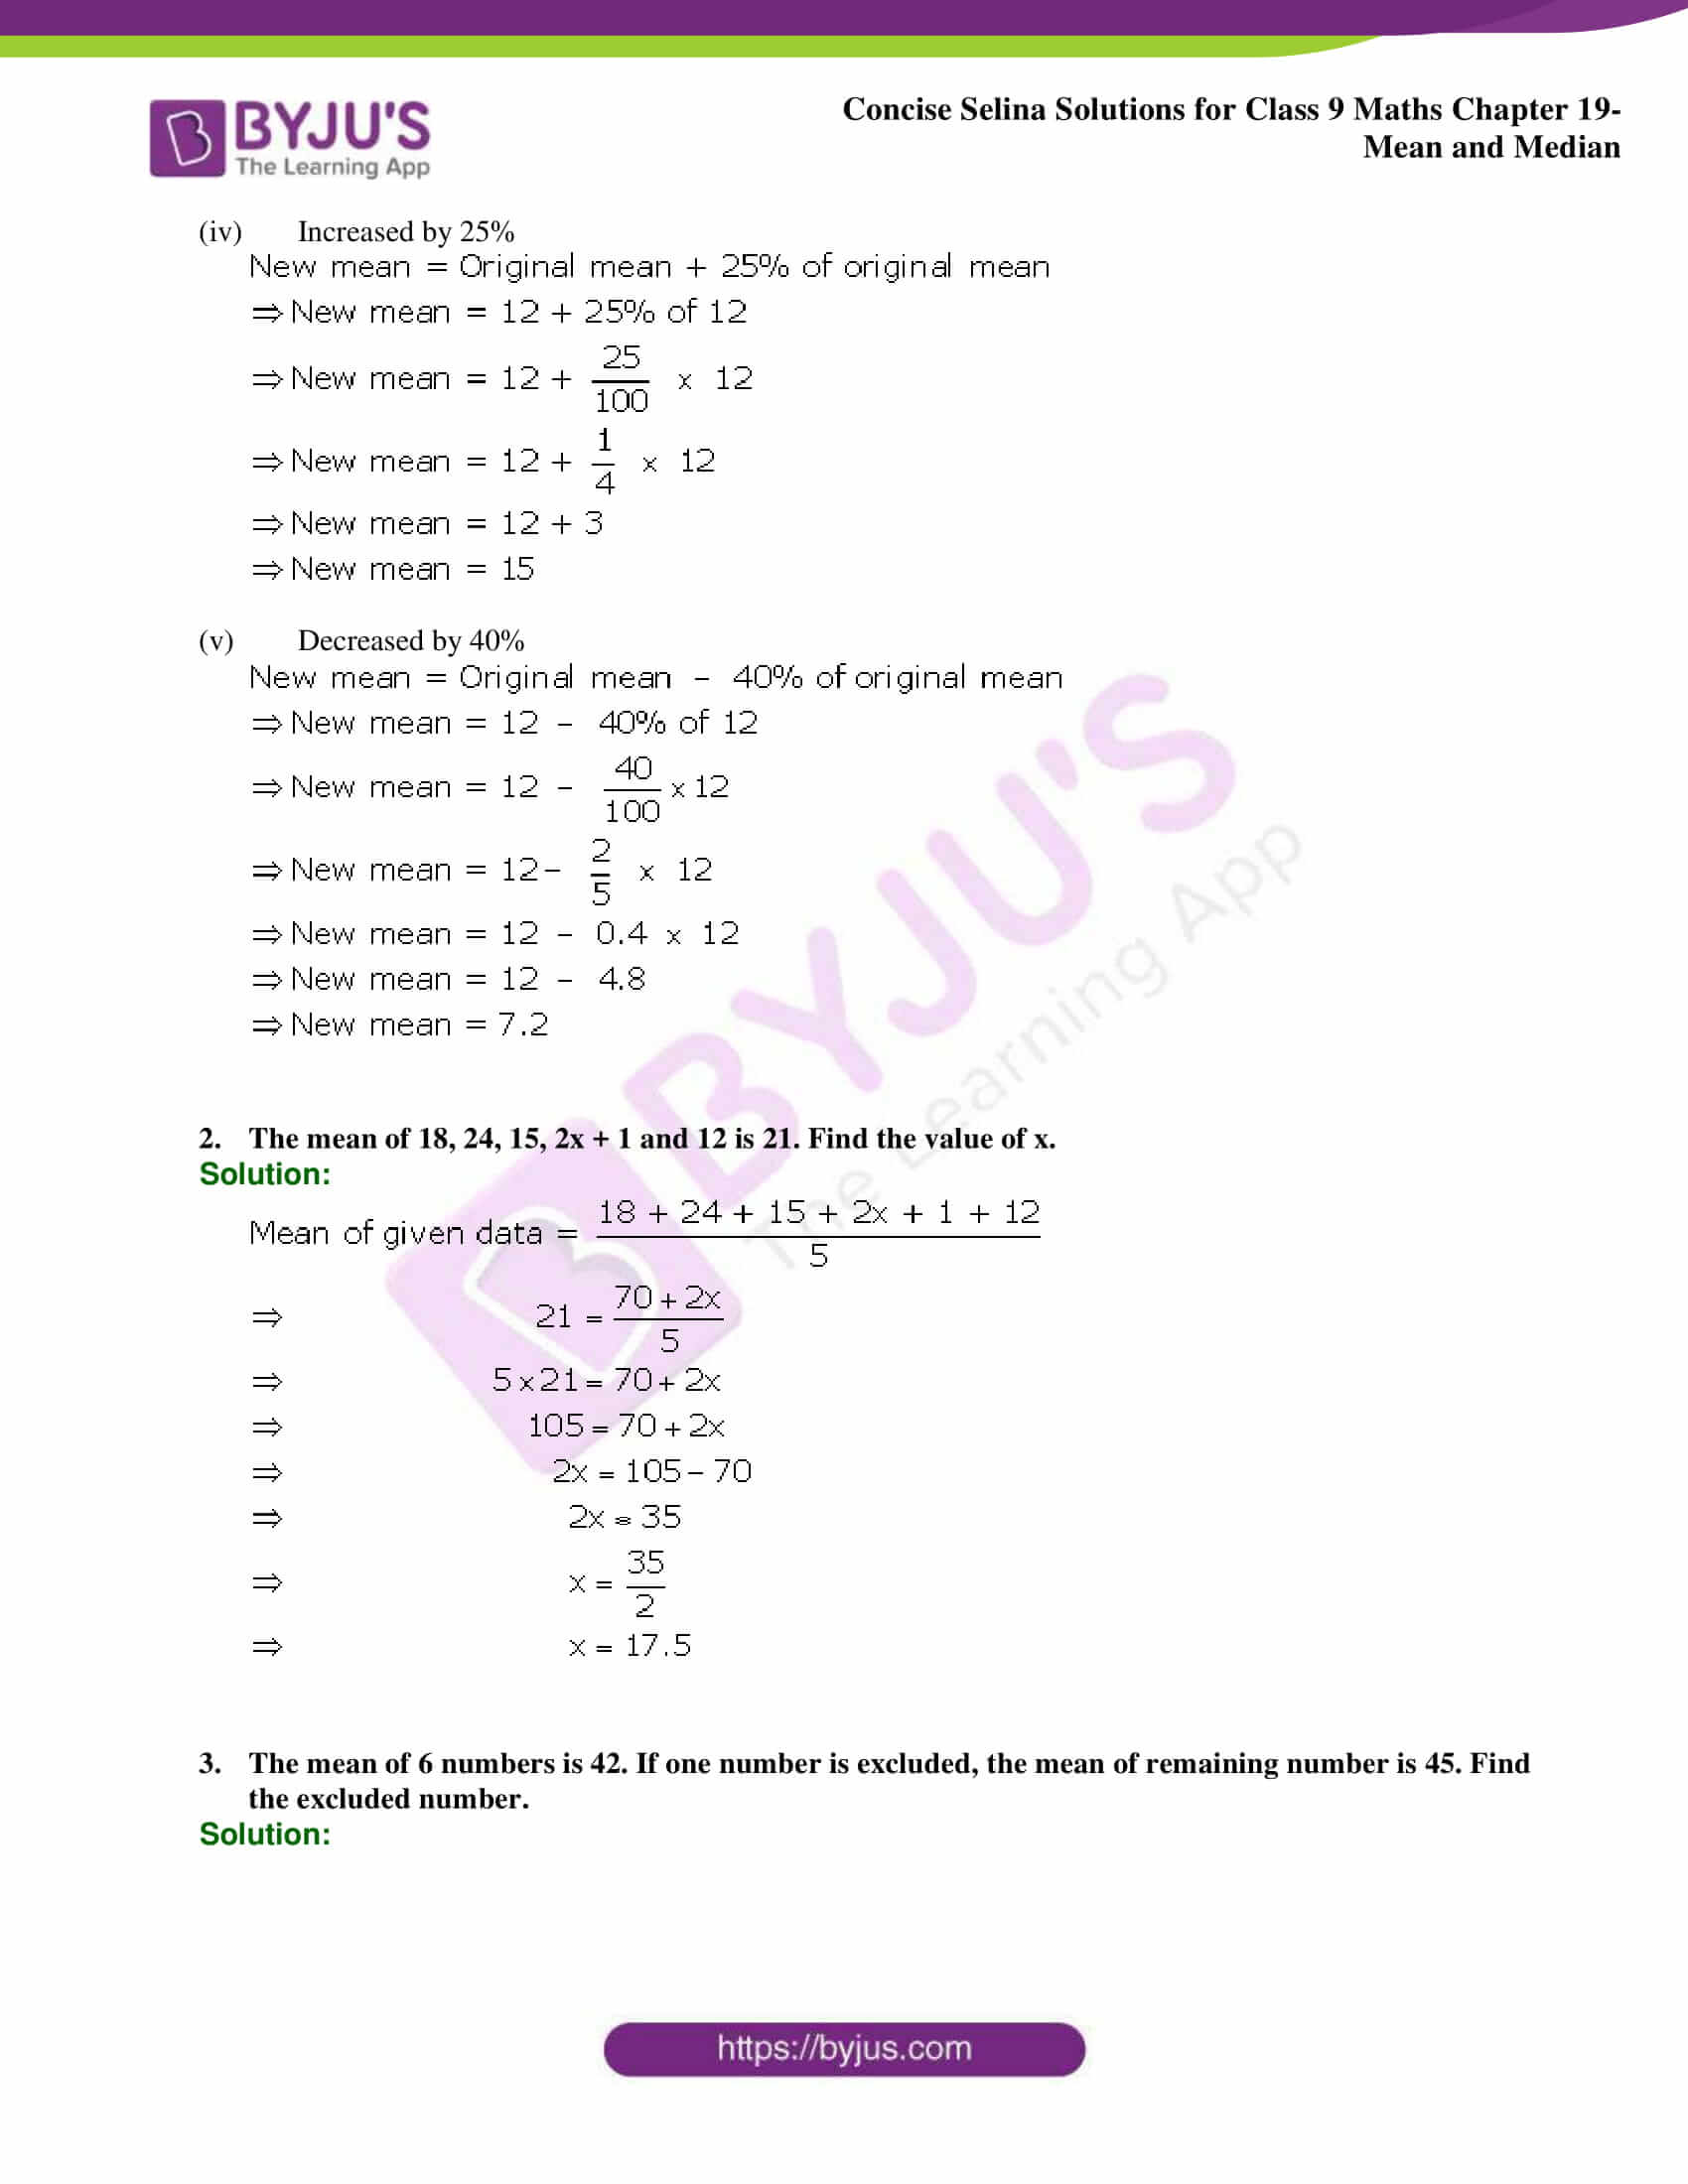 Concise Selina Solutions Class 9 Maths Chapter 19 Mean and Median part 14